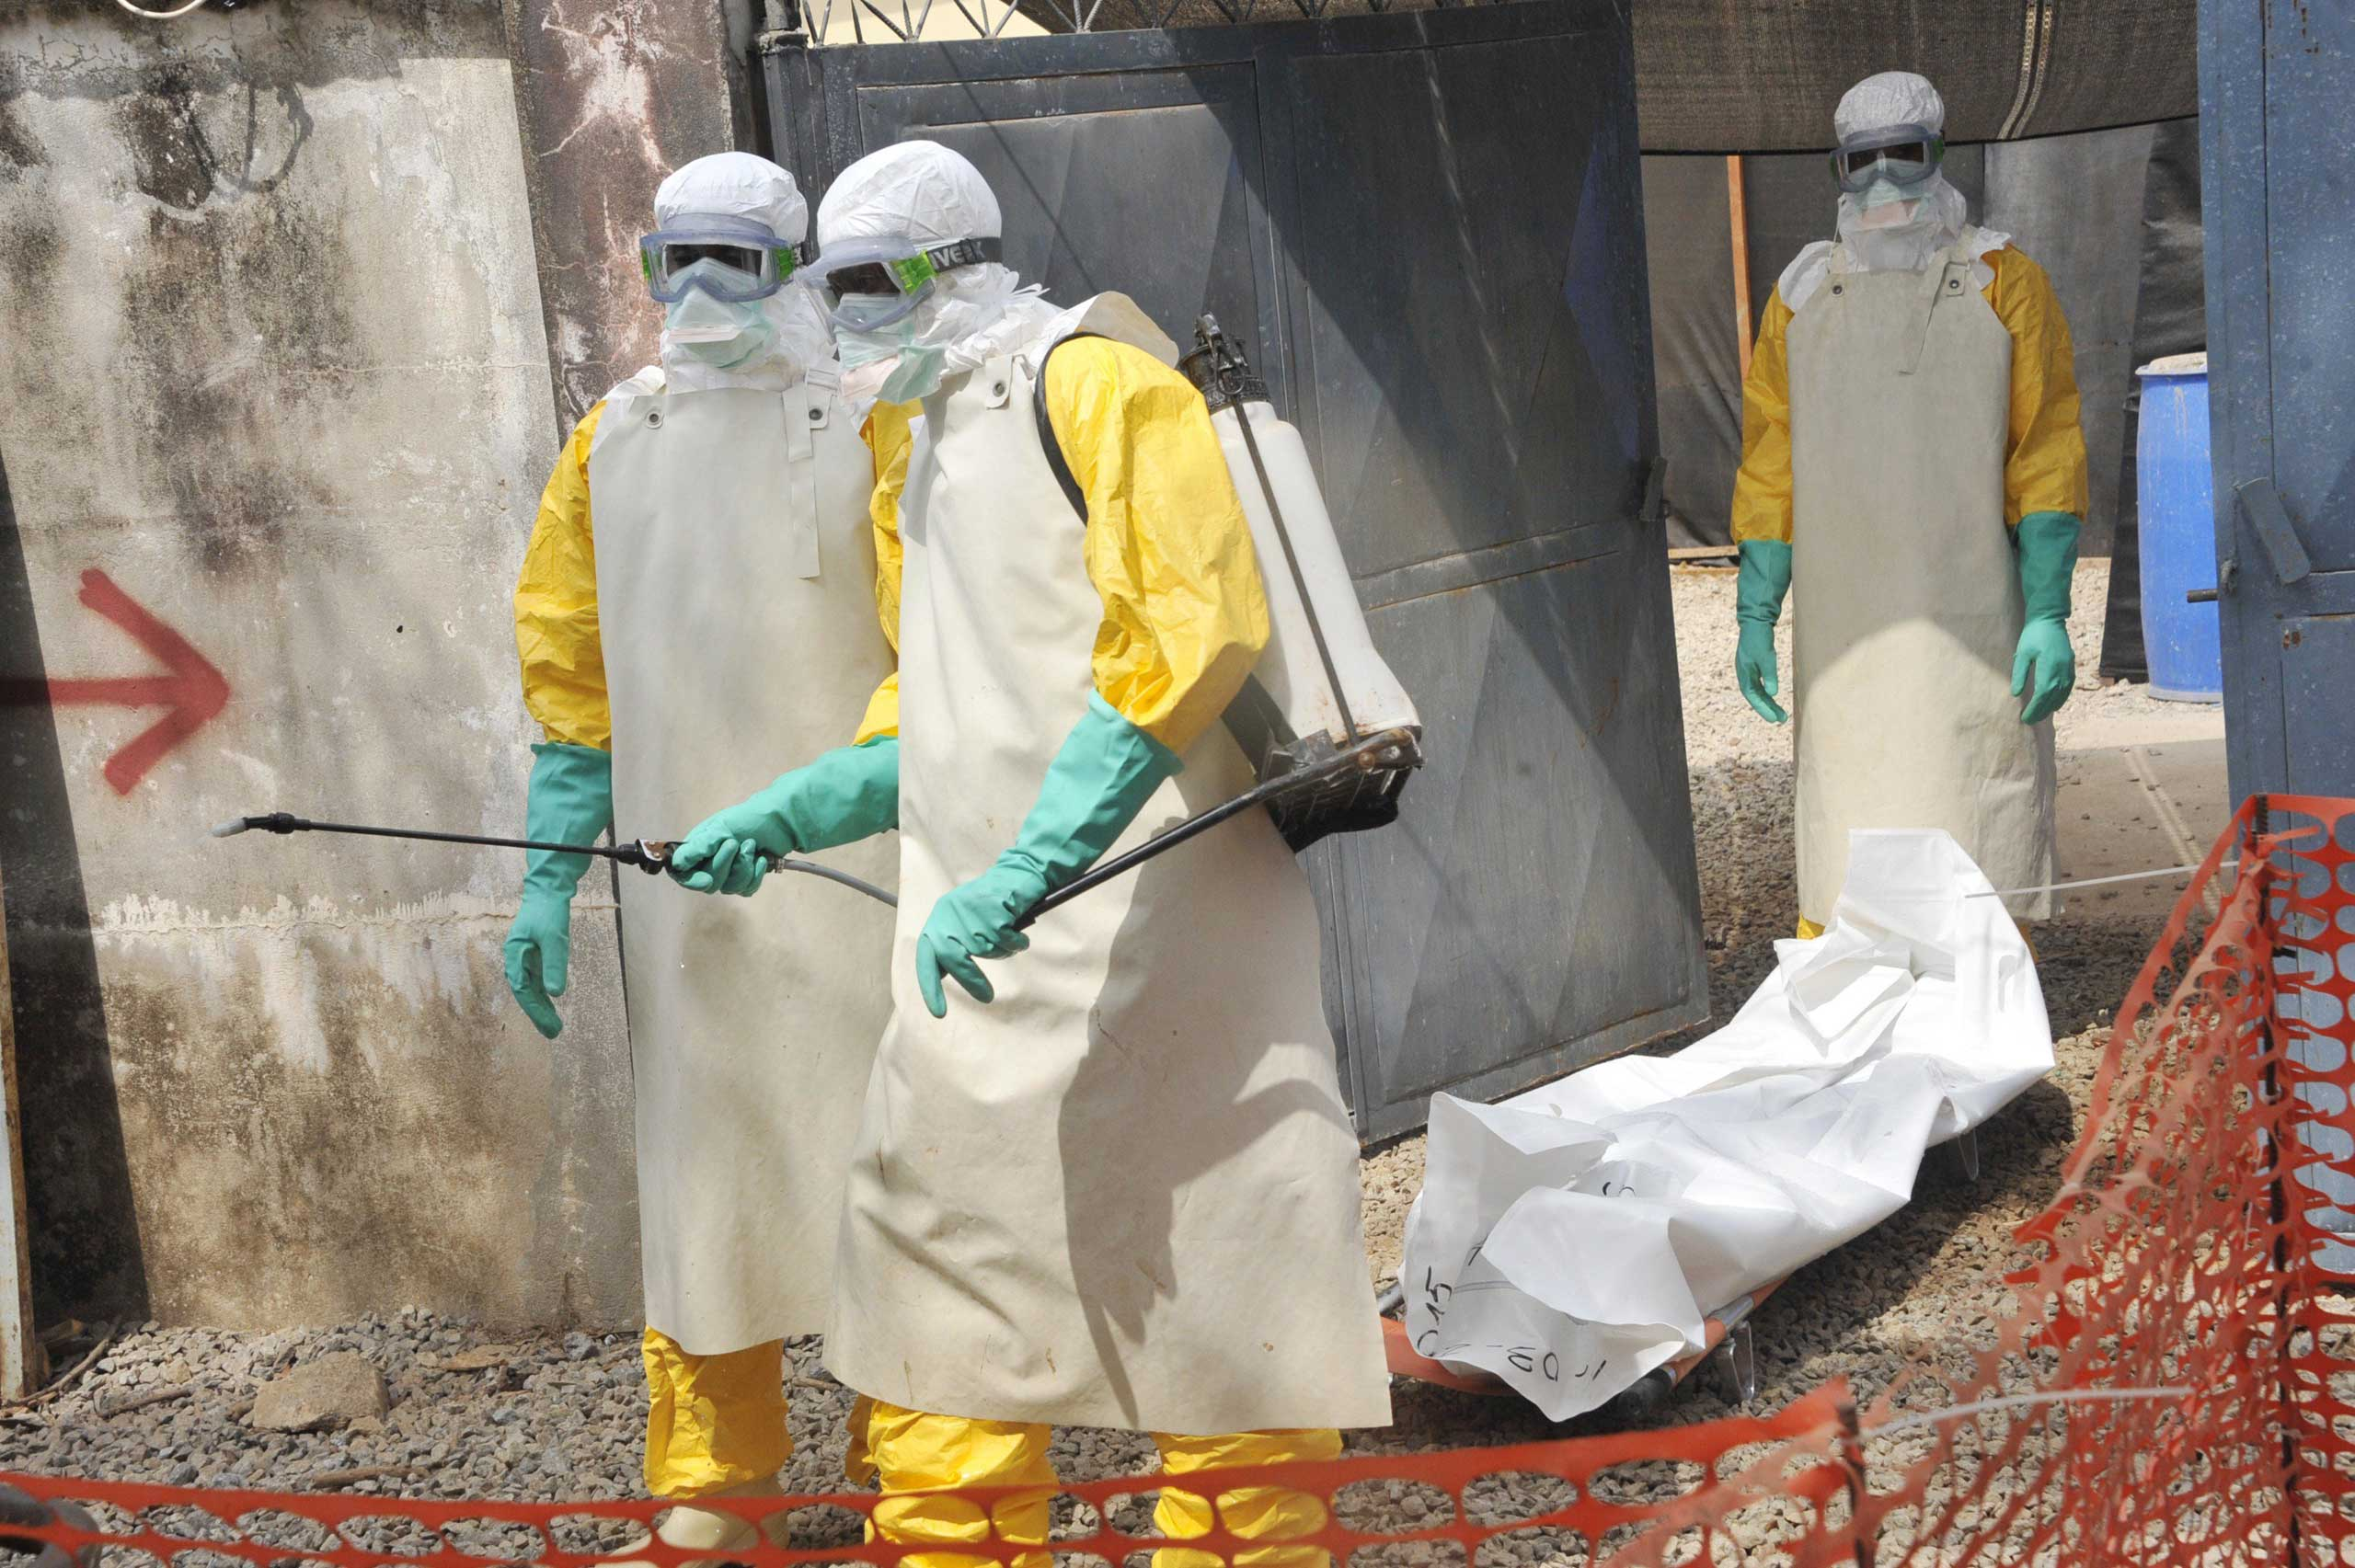 Members of the Guinean Red Cross move the body of a person who died from the Ebola virus on March 8, 2015 at the Donka hospital in Conakry.